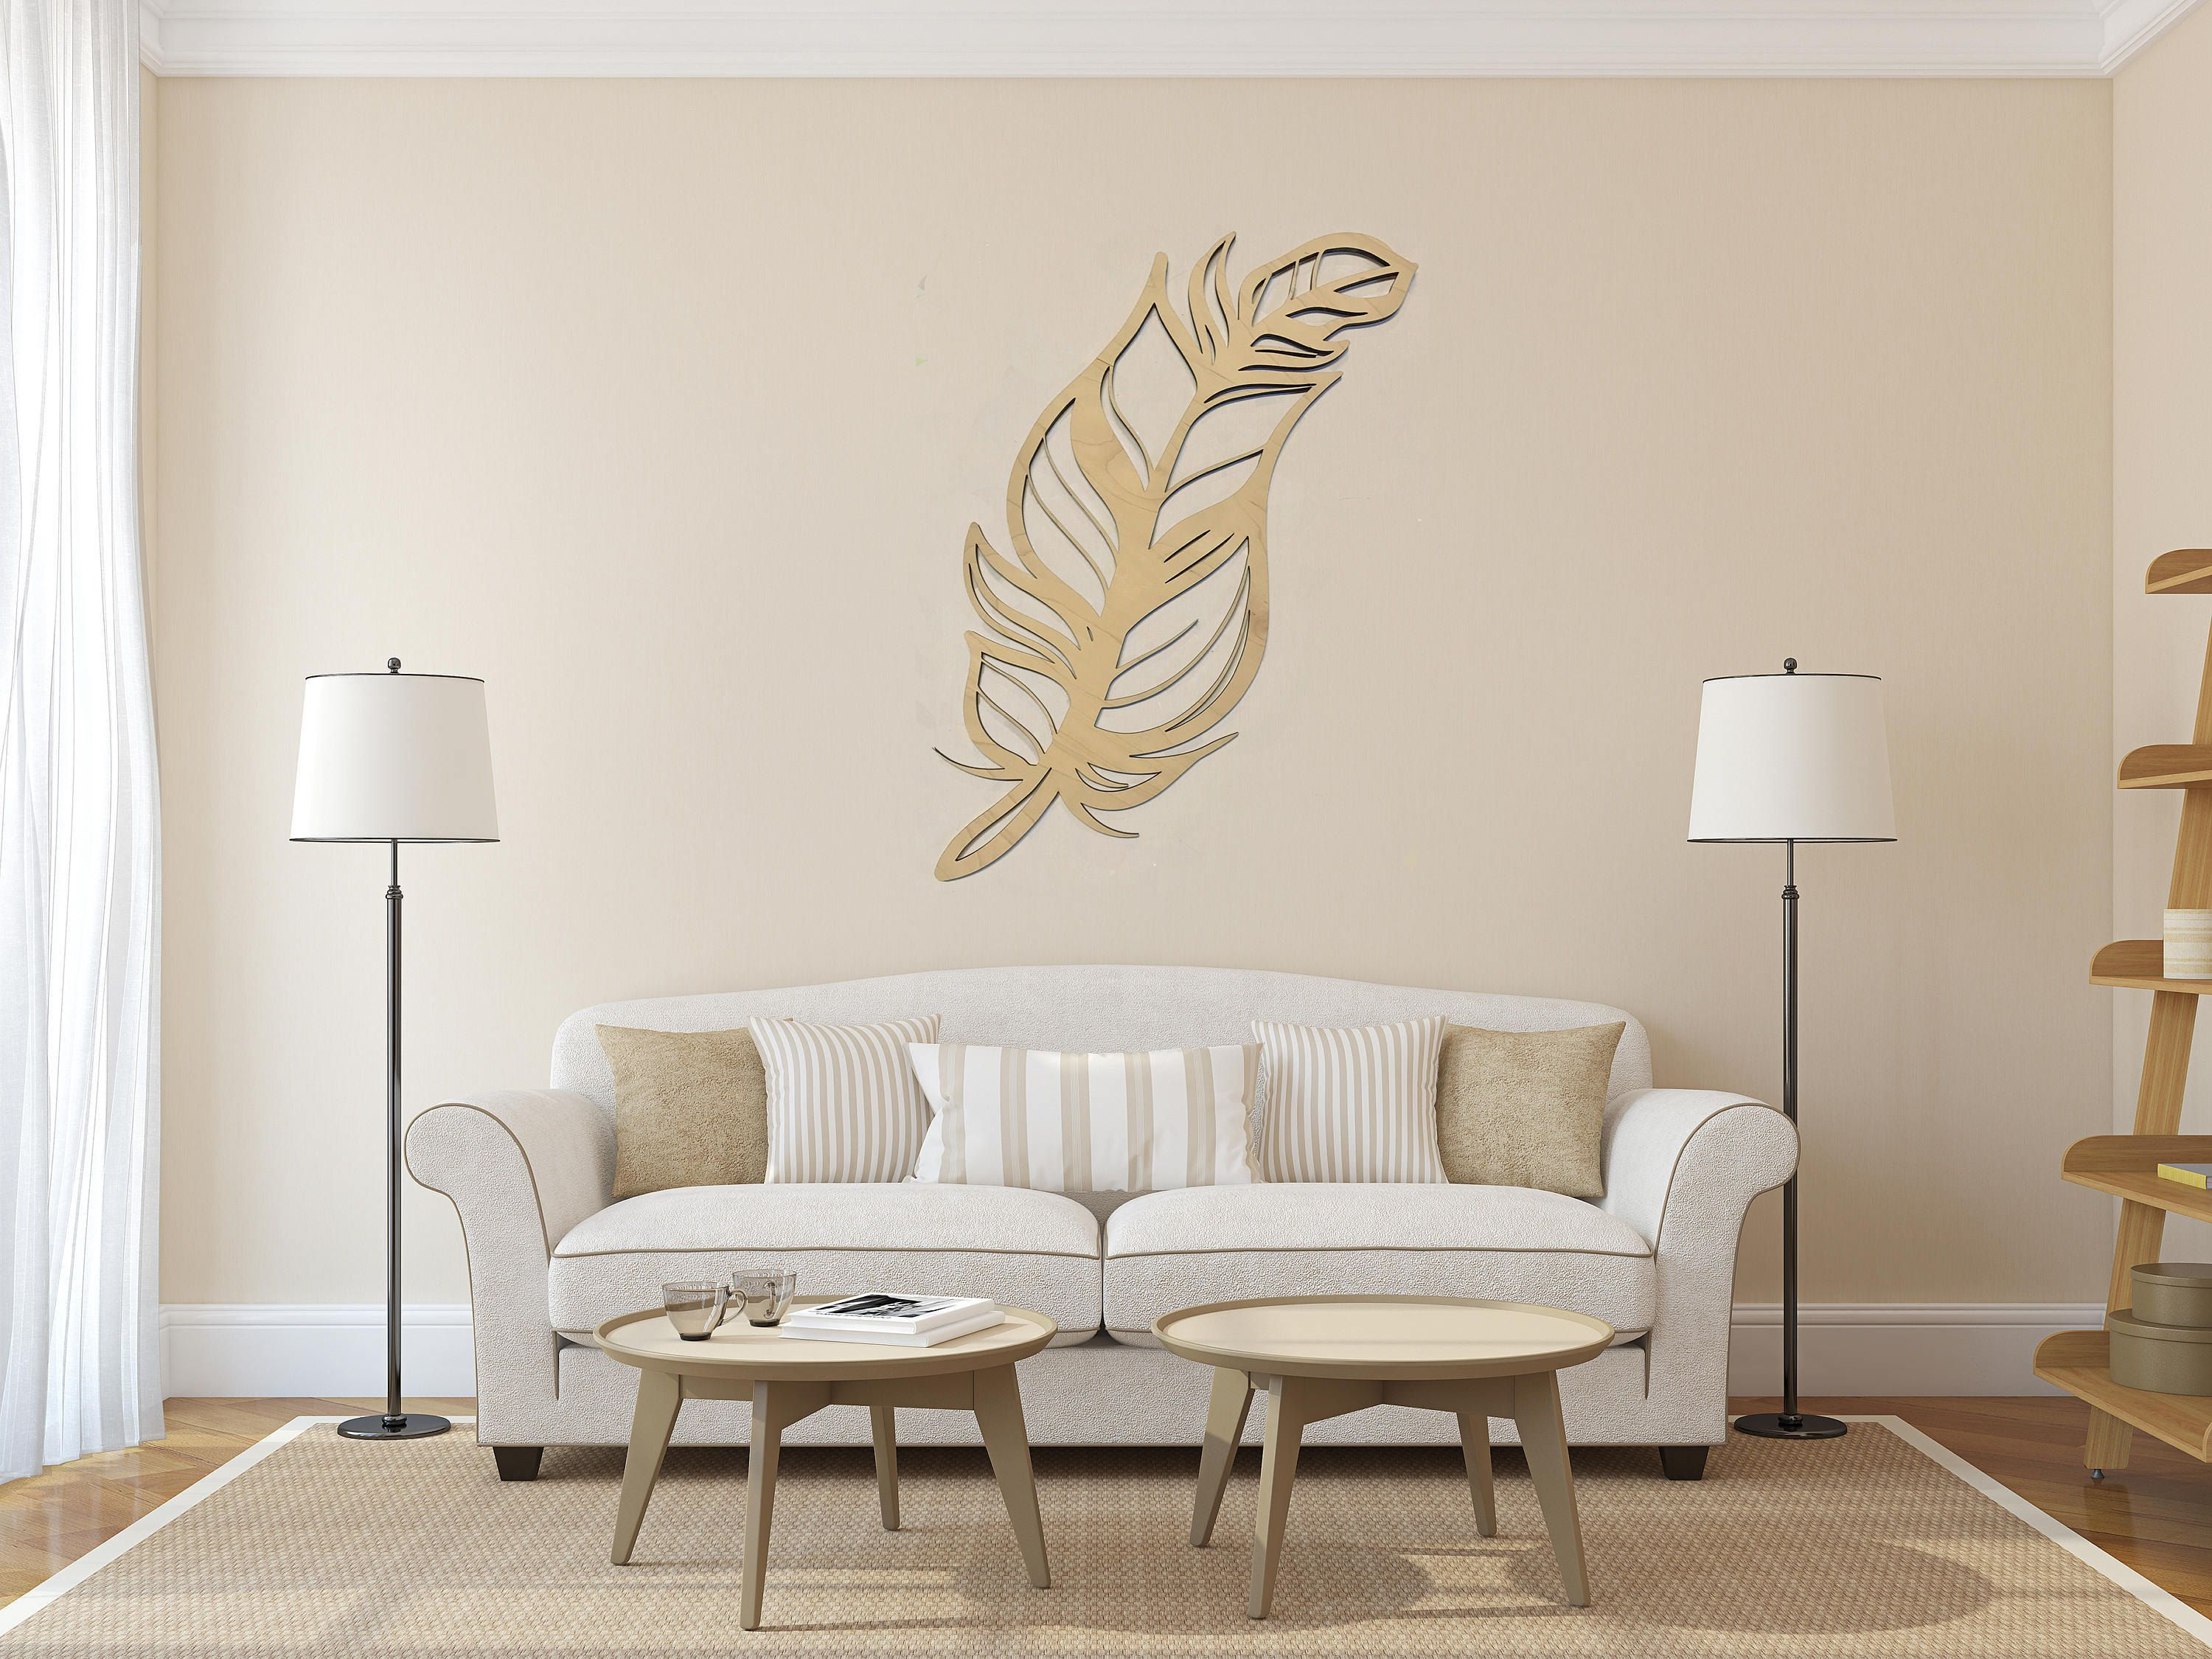 Entryway window ideas  feather cutout wall hanging  entryway sign  living room wall